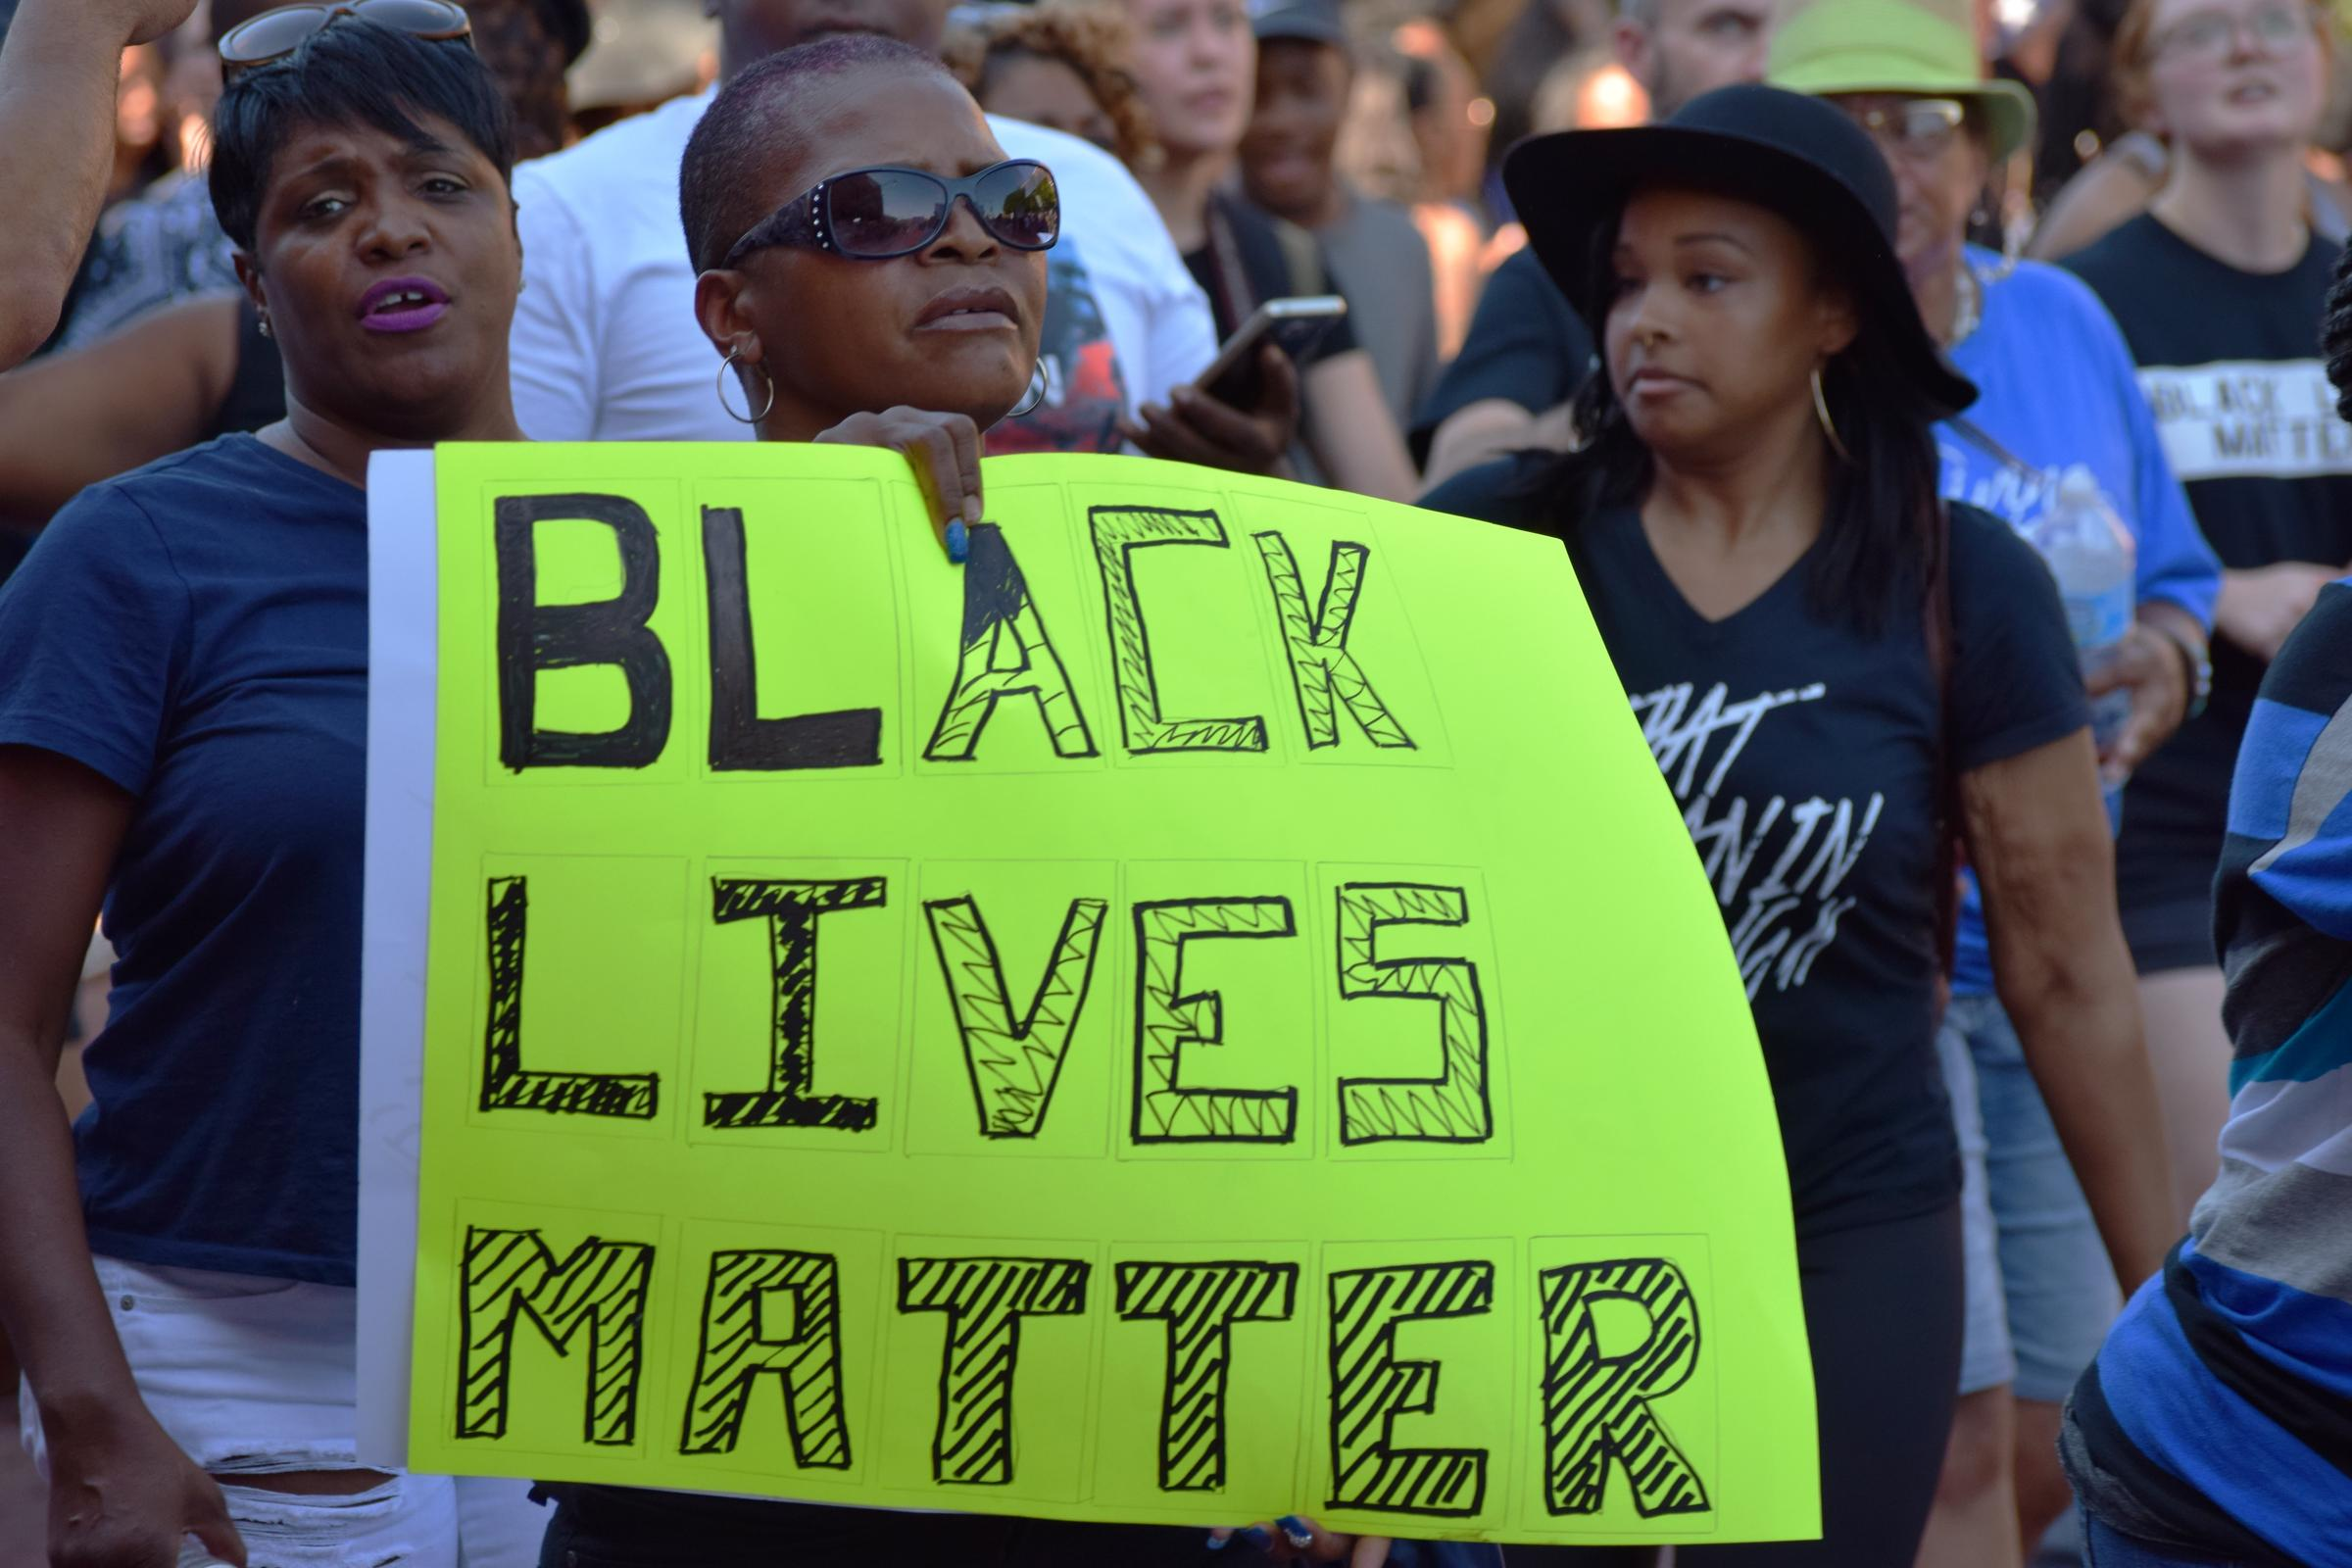 'Black lives matter' term is racist, says Rudy Giuliani